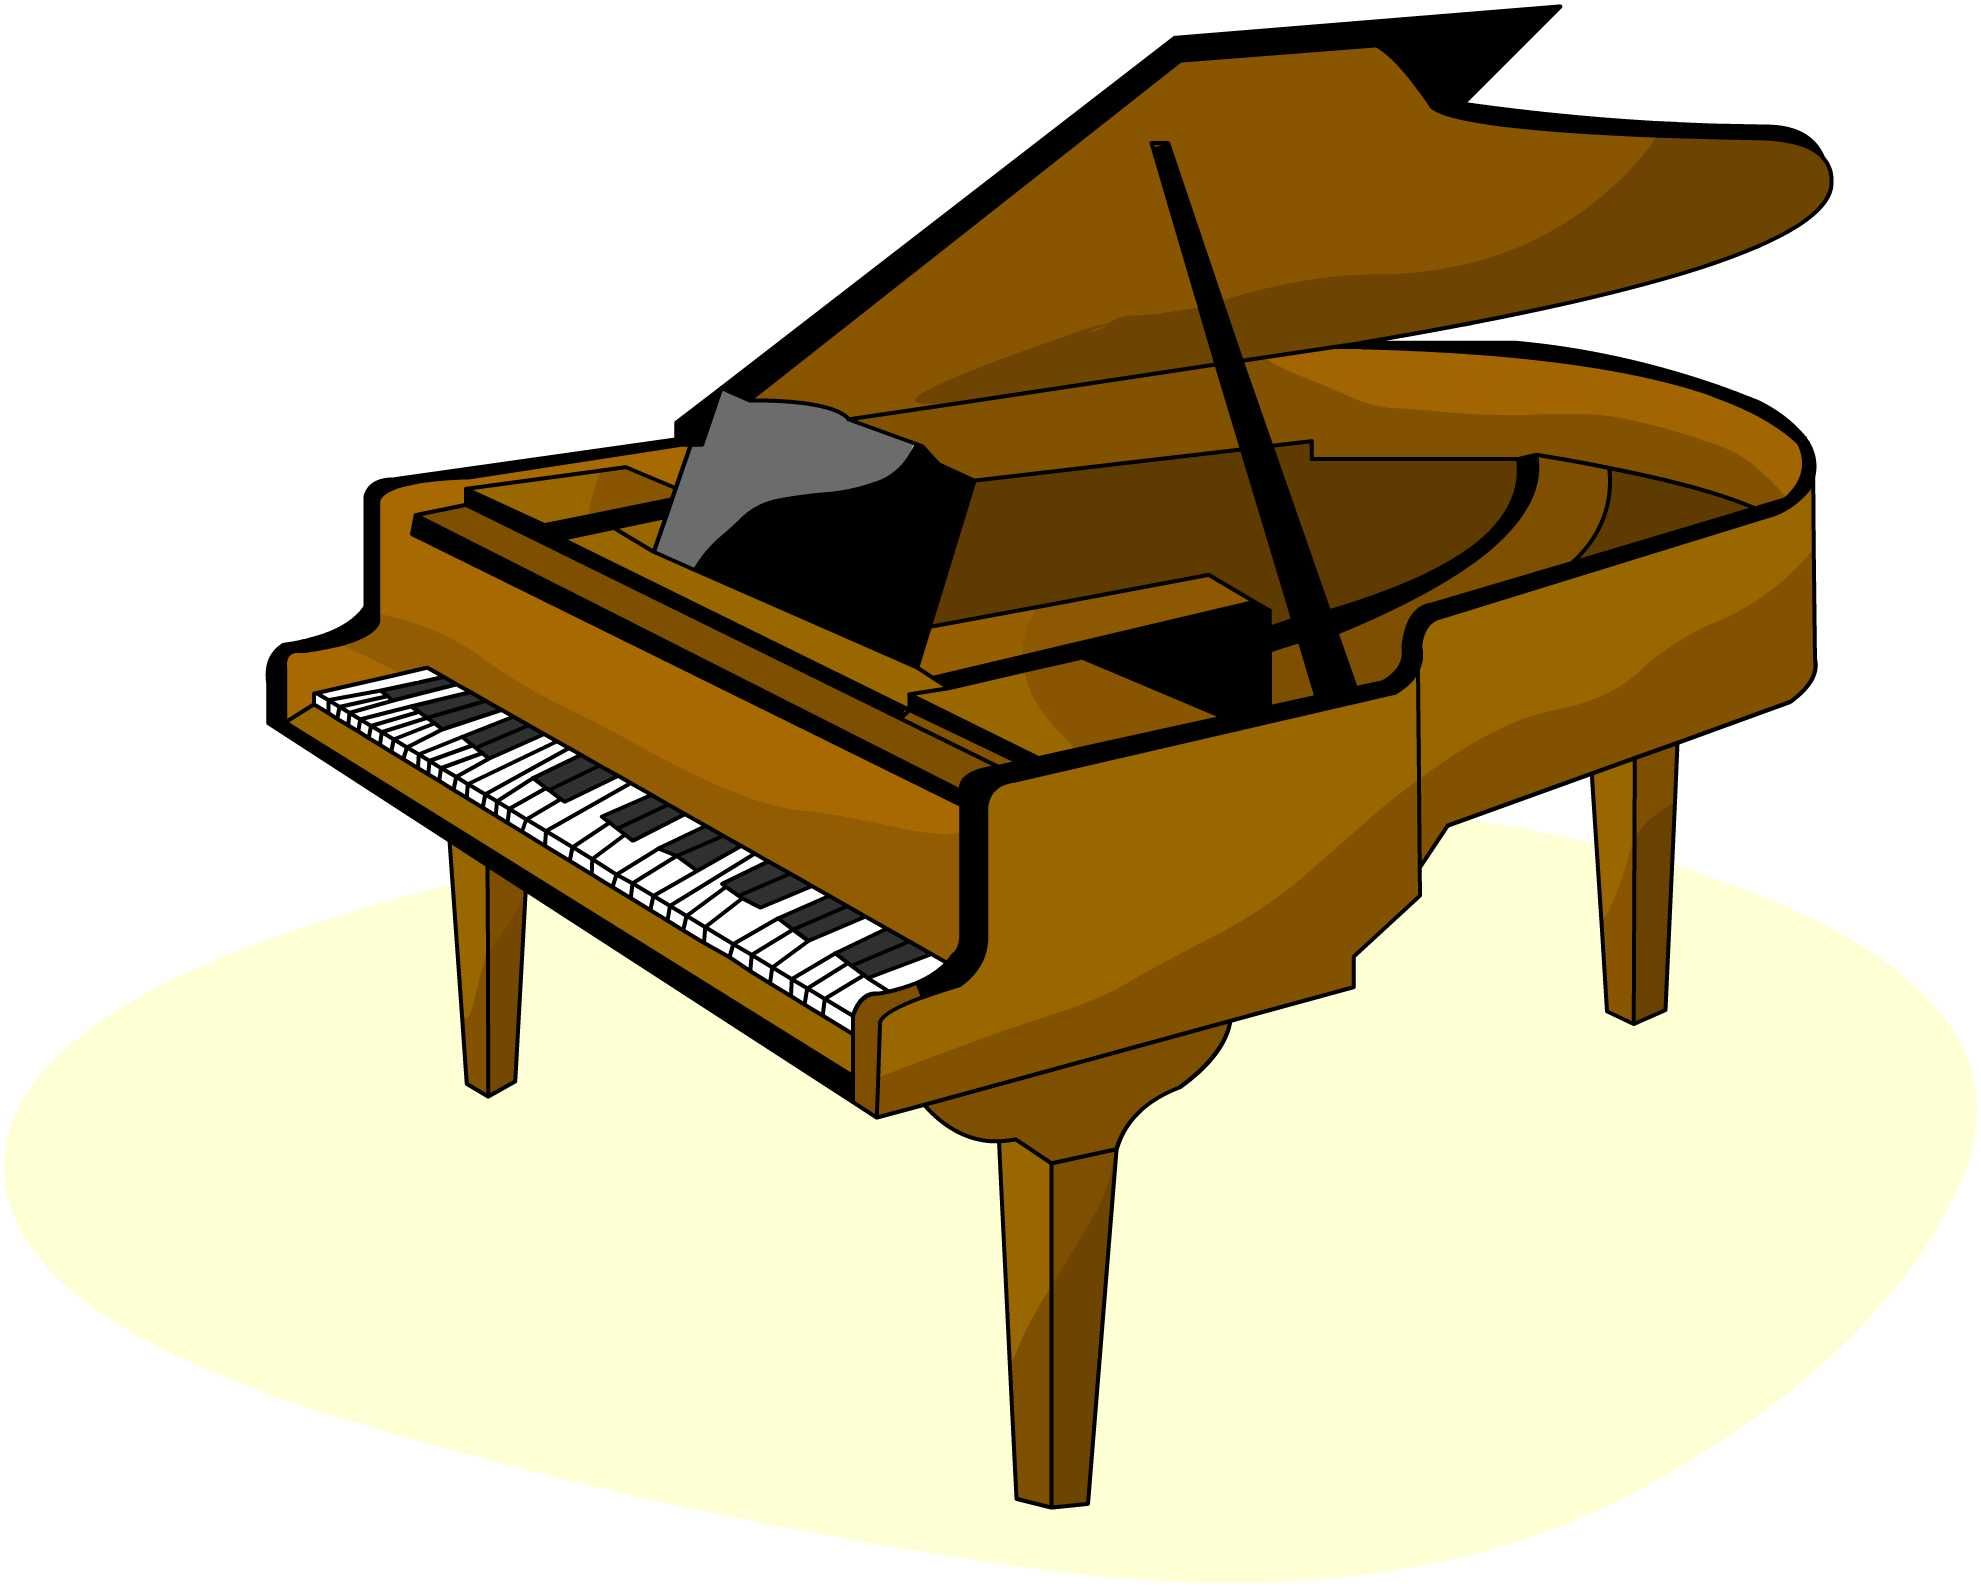 Jazz piano clipart image transparent Free Piano Cartoon Cliparts, Download Free Clip Art, Free Clip Art ... image transparent